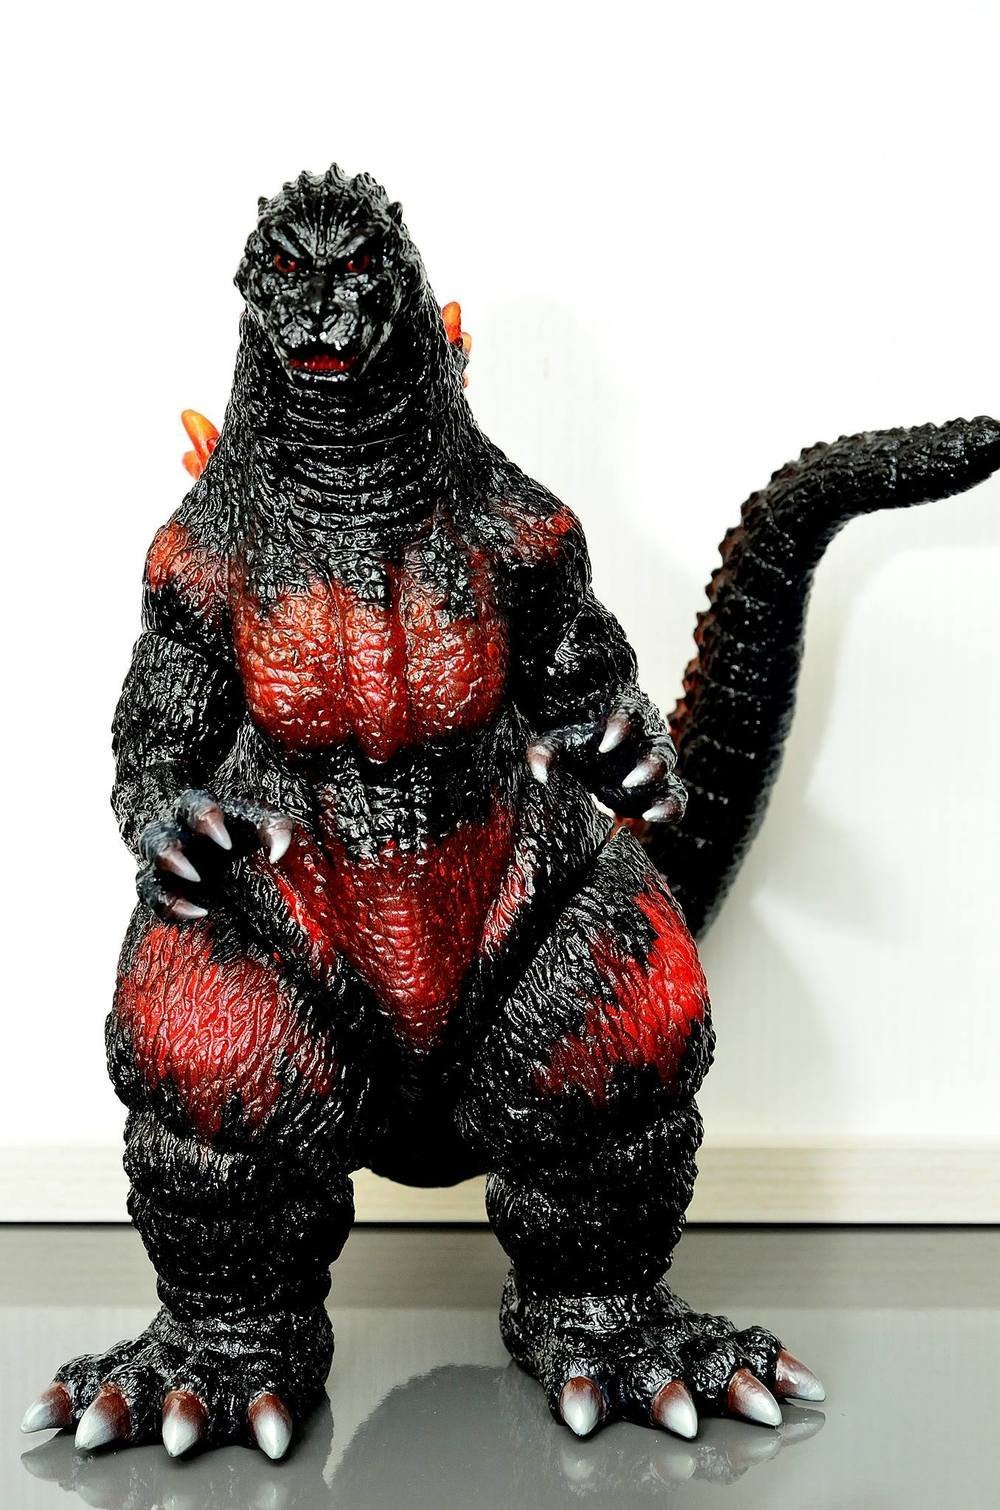 Vampire Robots Exclusive Burning Godzilla